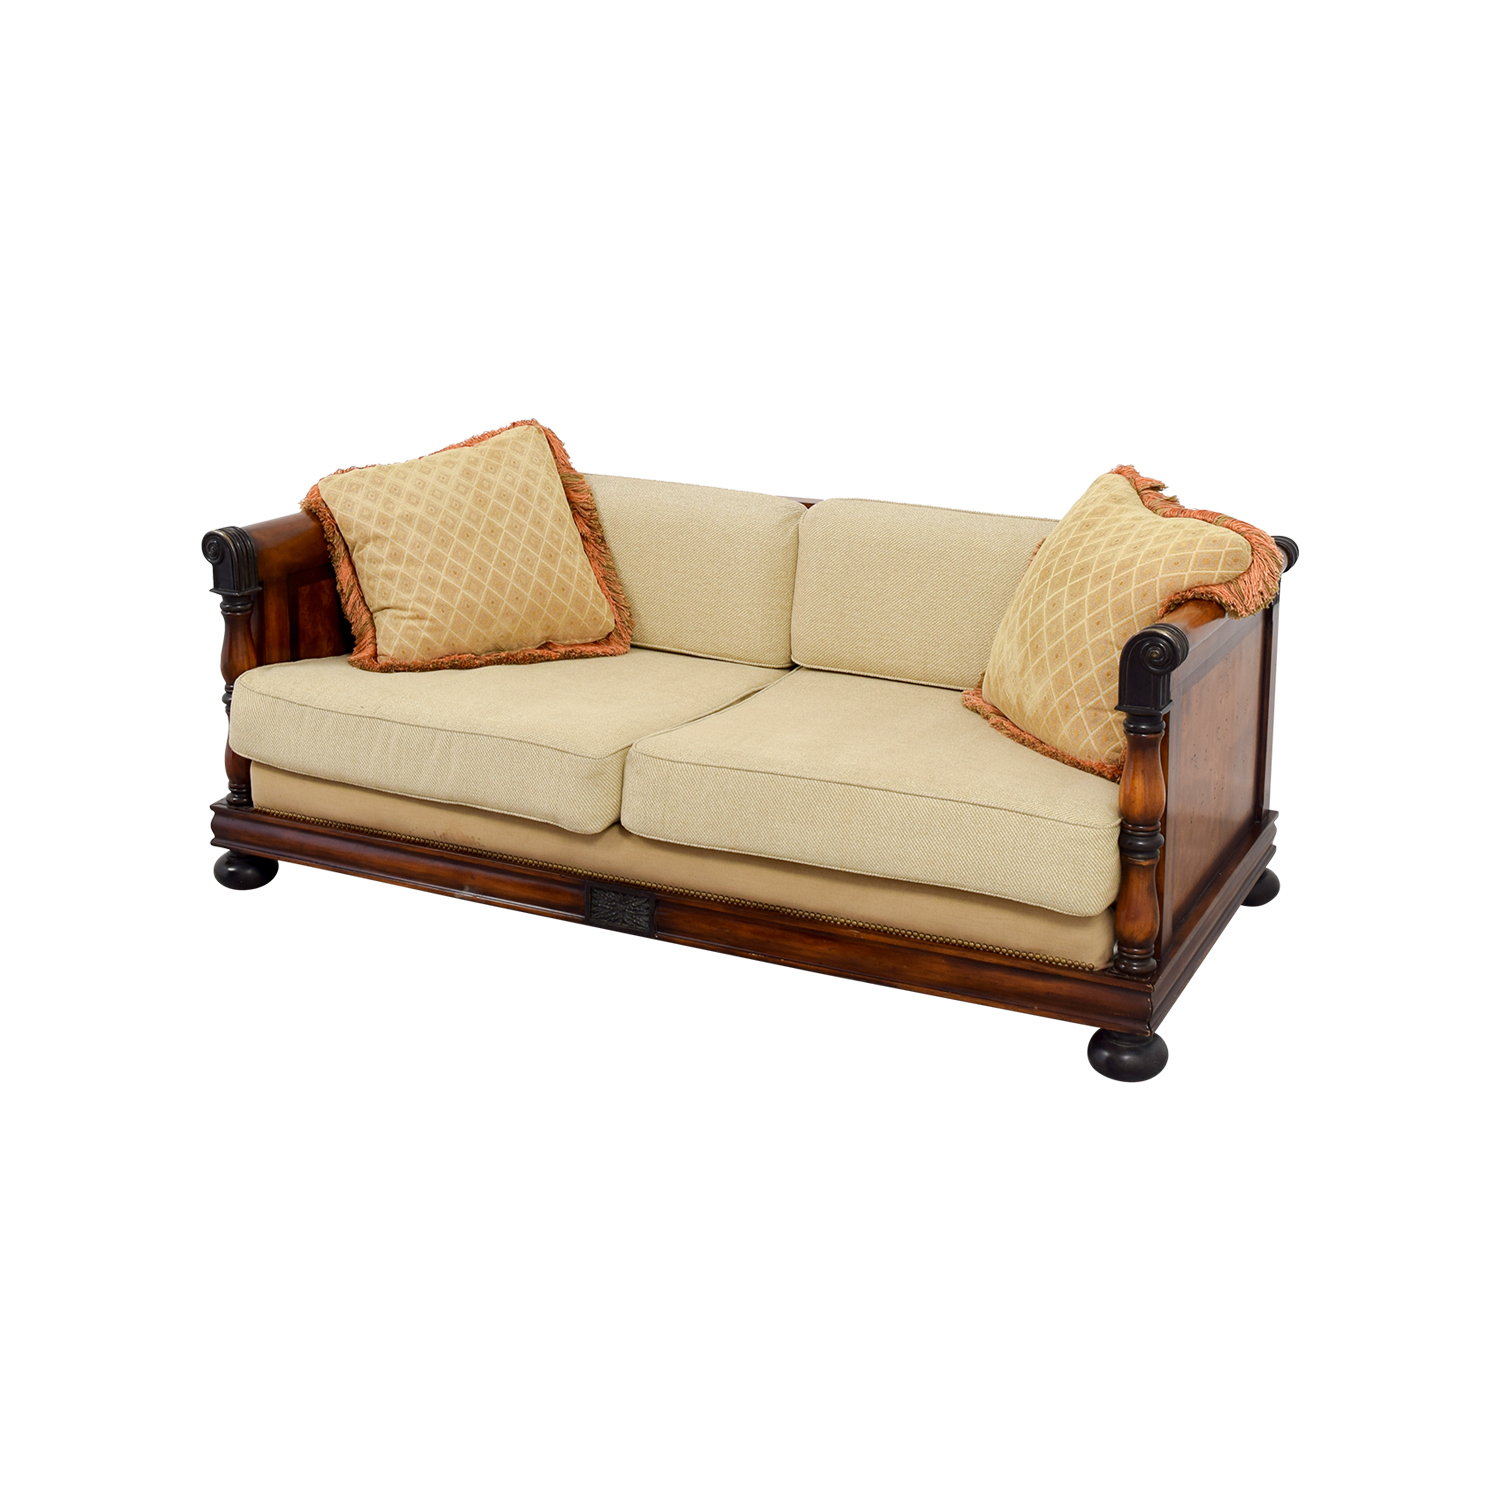 59% OFF Traditional Wooden Framed Sofa Sofas